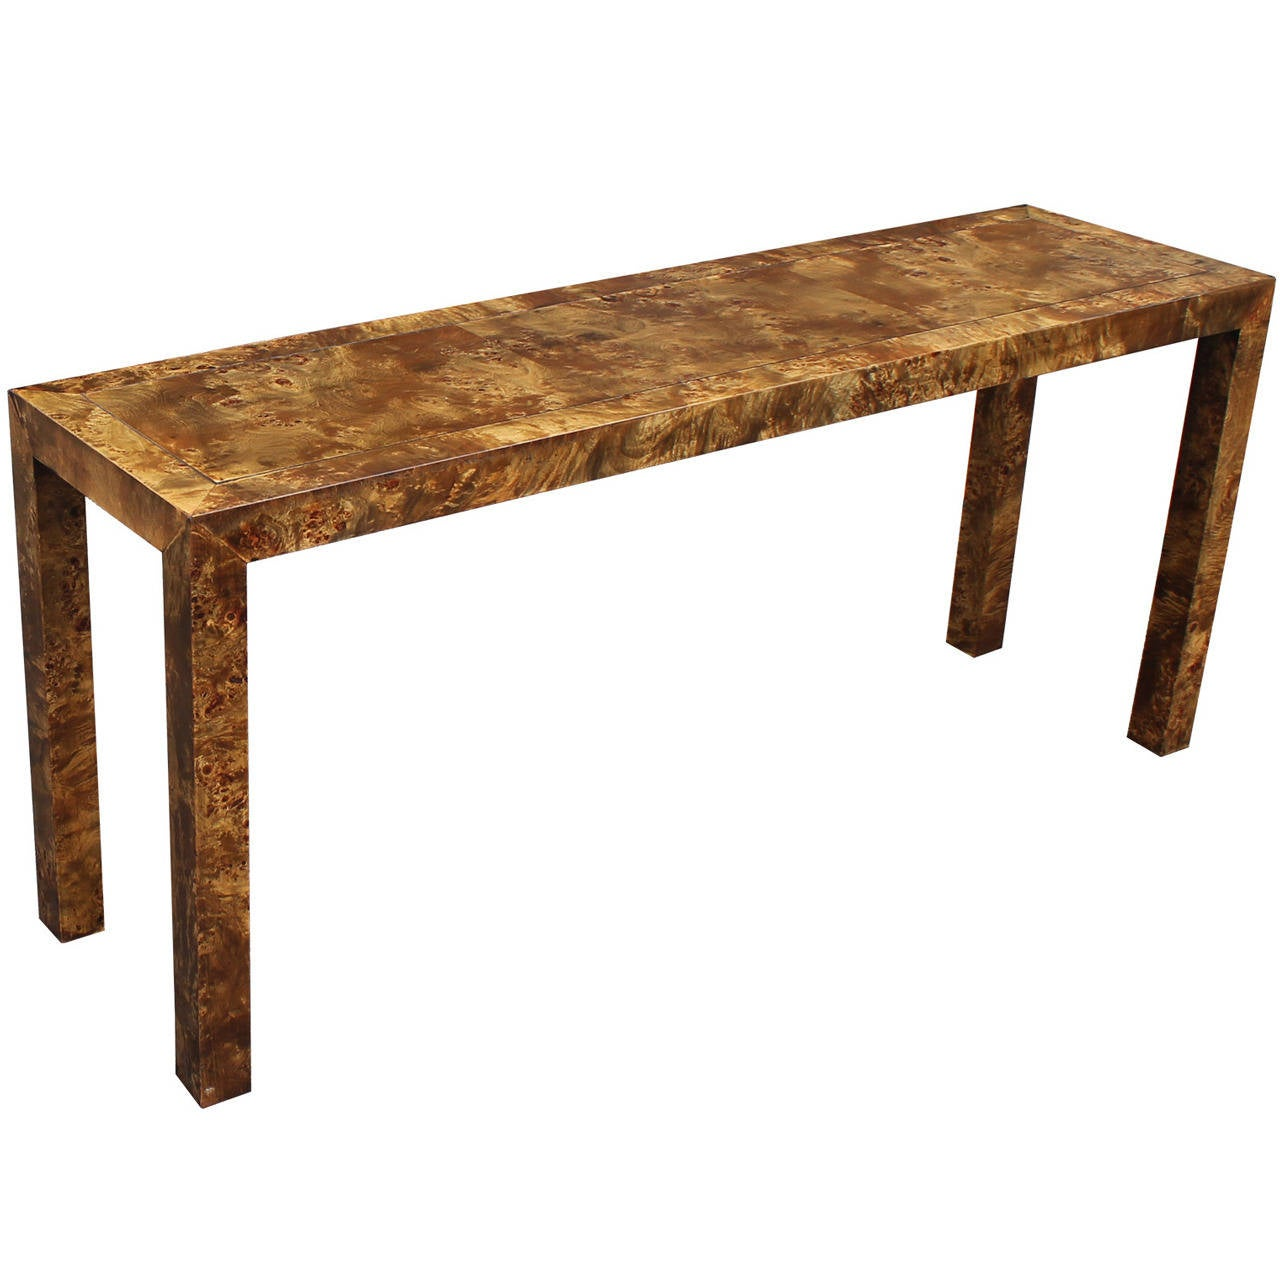 Parson Console Table Parson Style Olive Burl Wood Console Table at 1stdibs